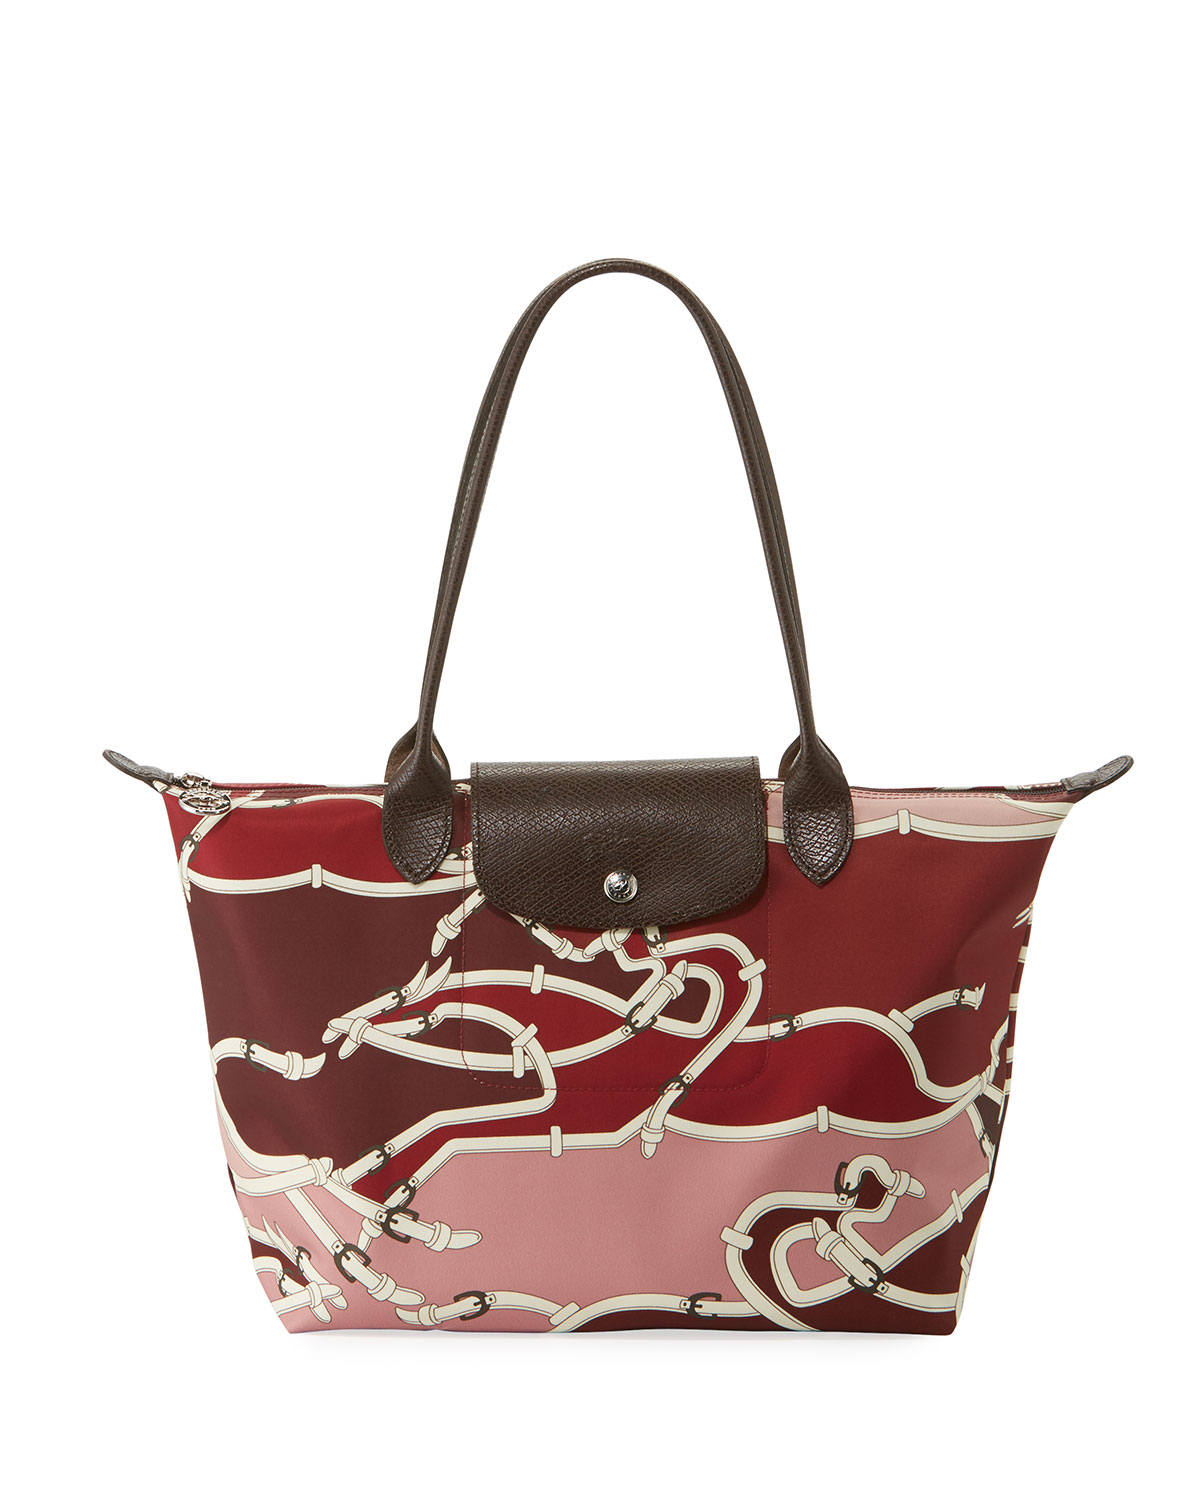 965fffe123bf Longchamp Le Pliage Galop Medium Shoulder Tote Bag